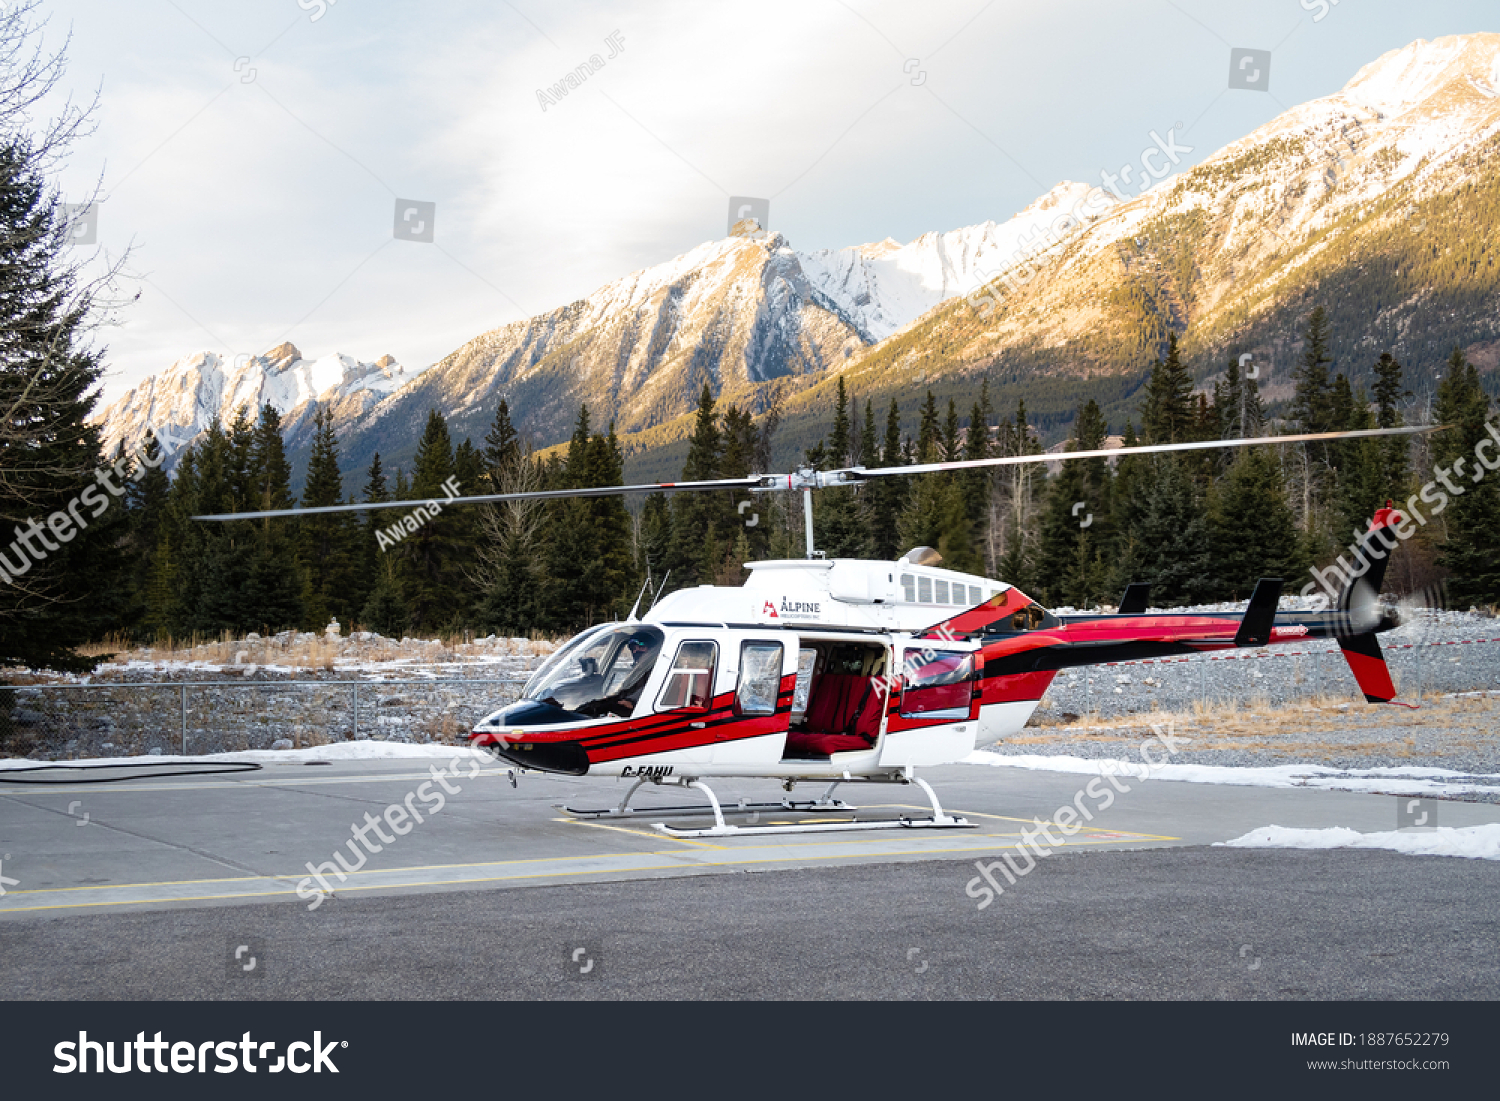 stock-photo-canmore-canada-december-heli